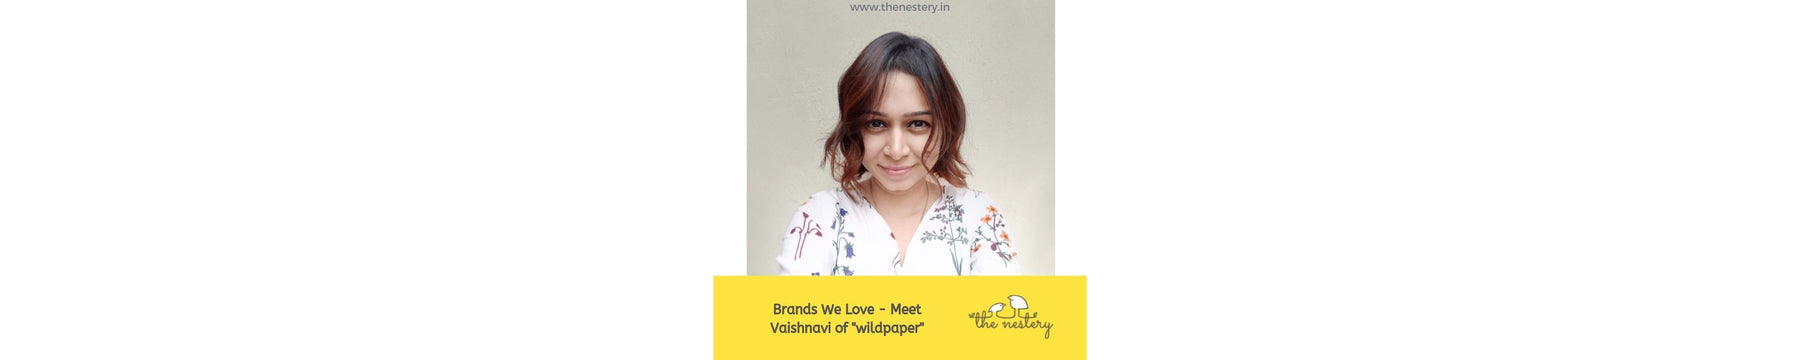 "Brands We Love - Meet Vaishnavi of ""wildpaper"""